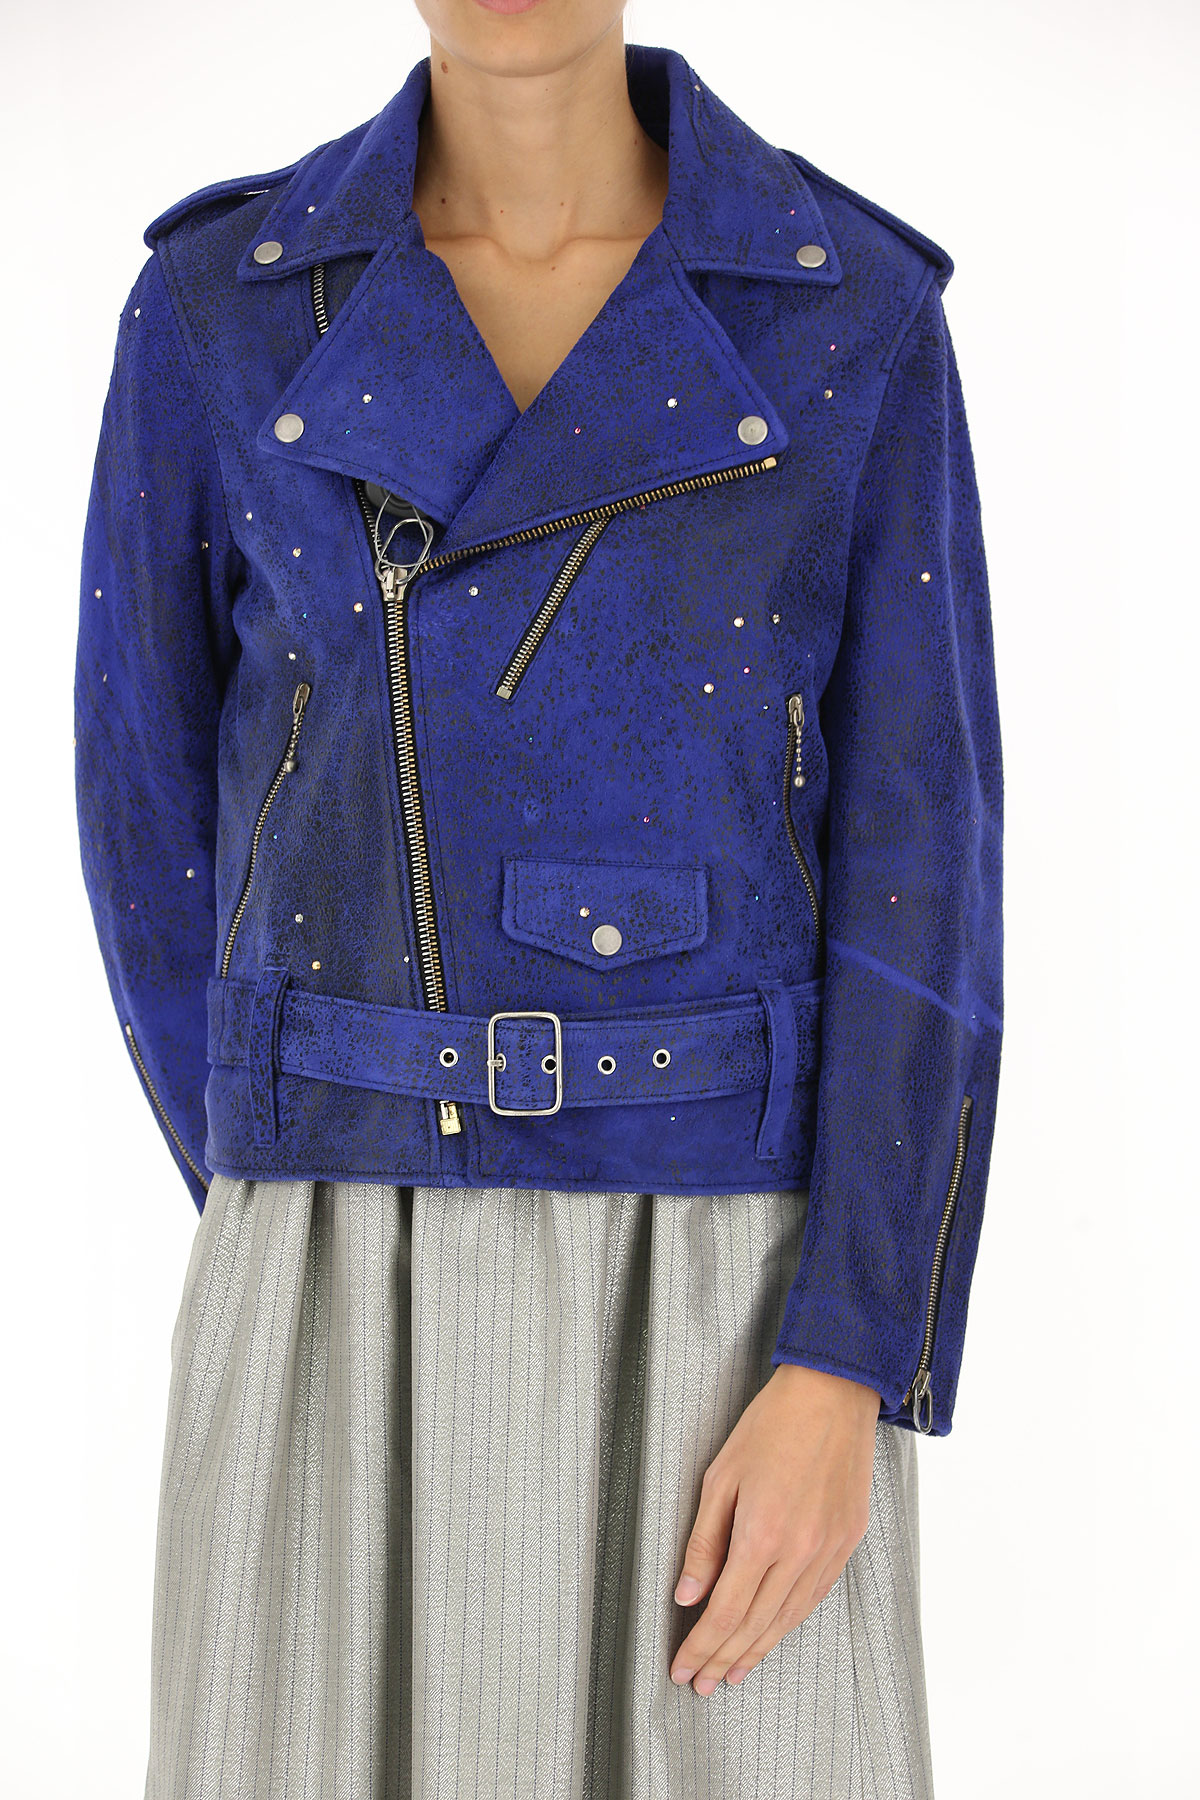 Image of Golden Goose Leather Jacket for Women, Night Blue, Leather, 2017, 10 2 4 6 8